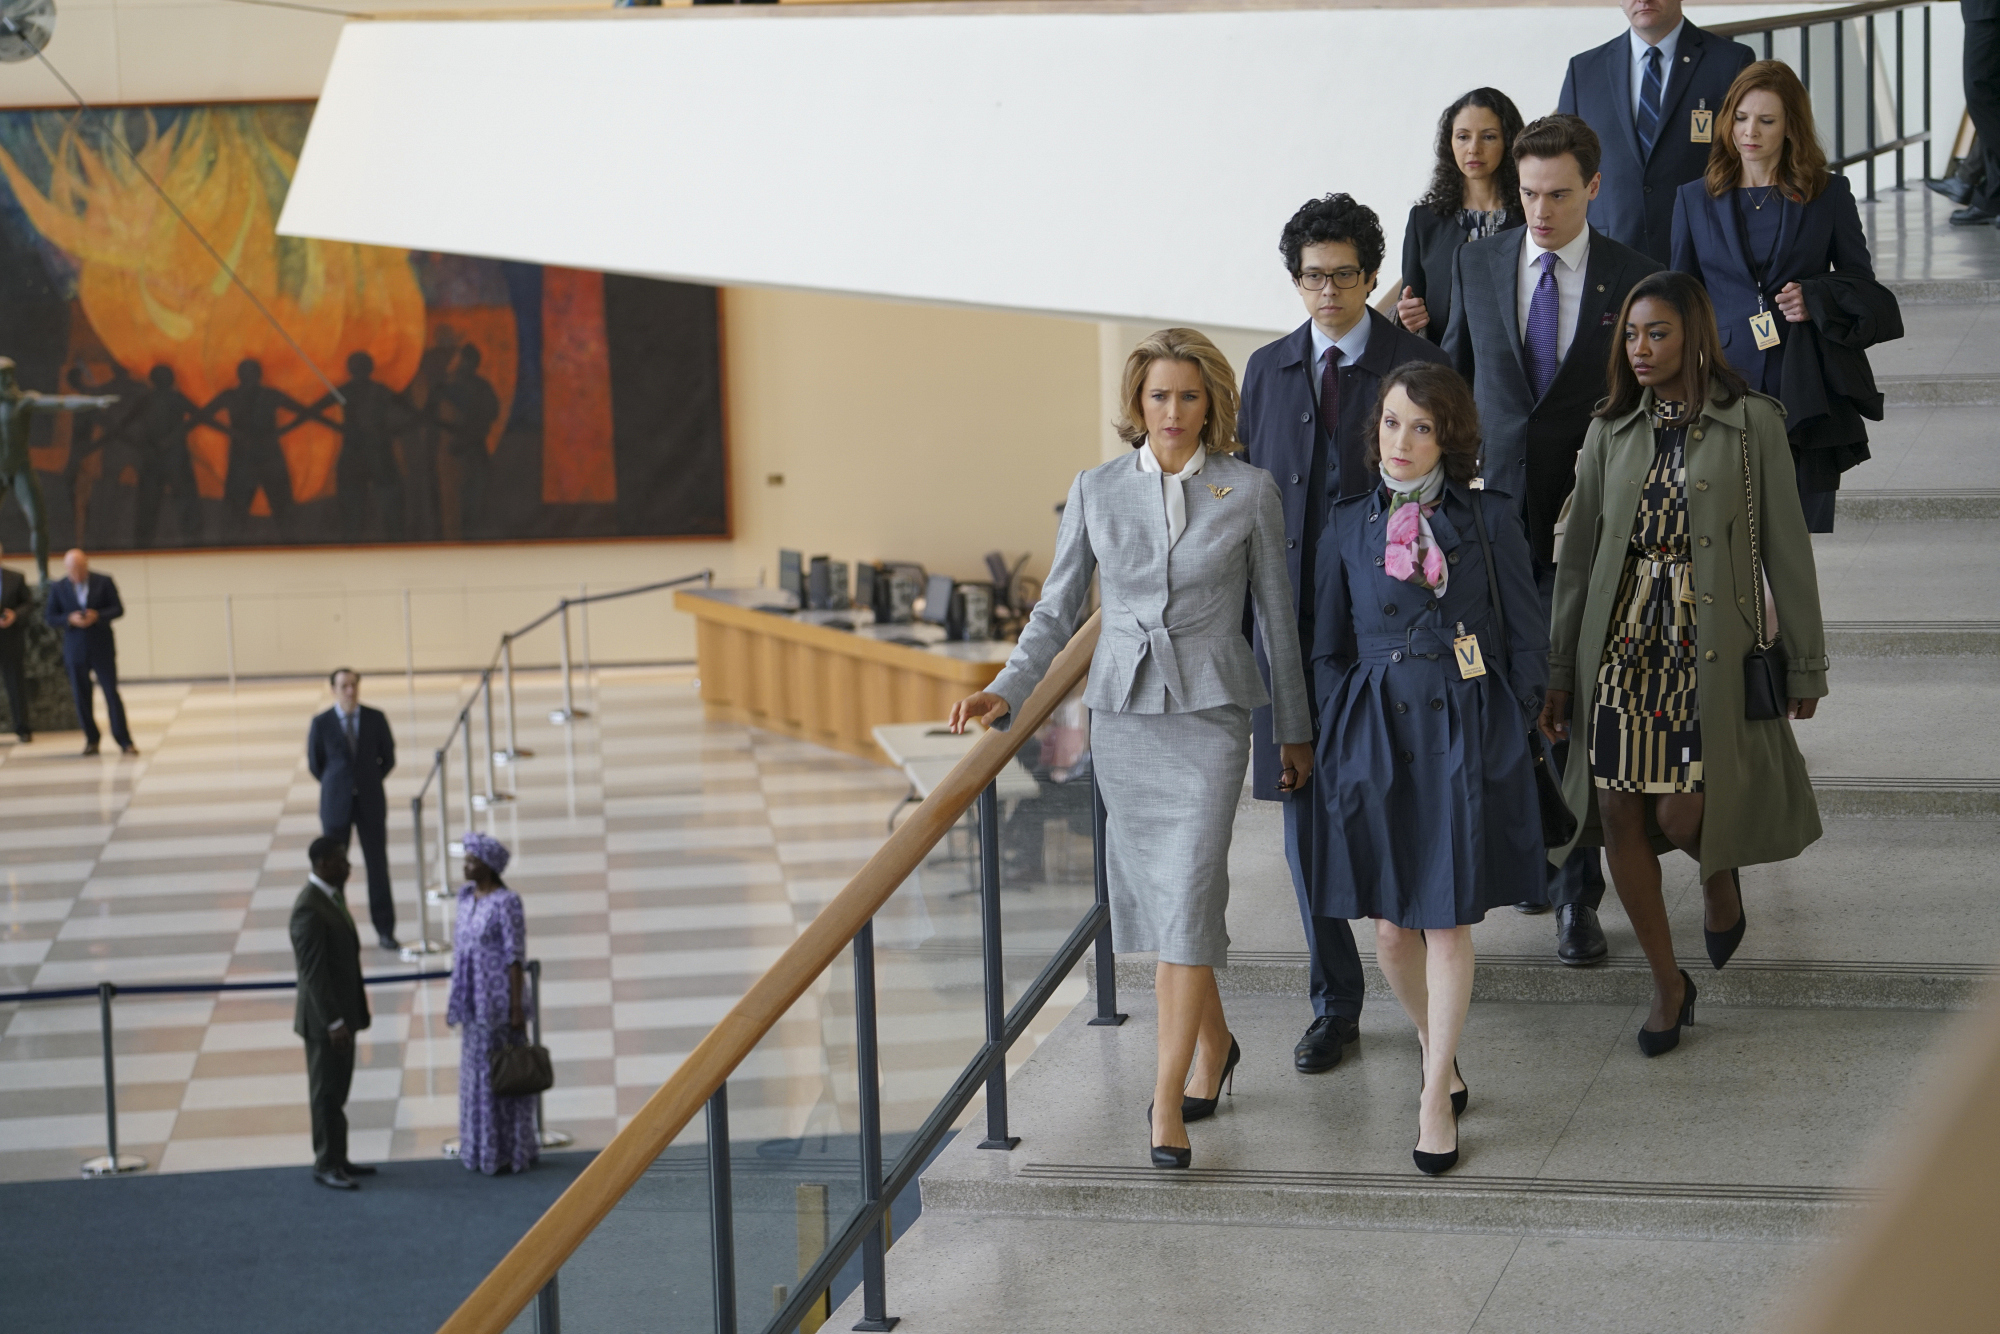 The team departs the United Nations.